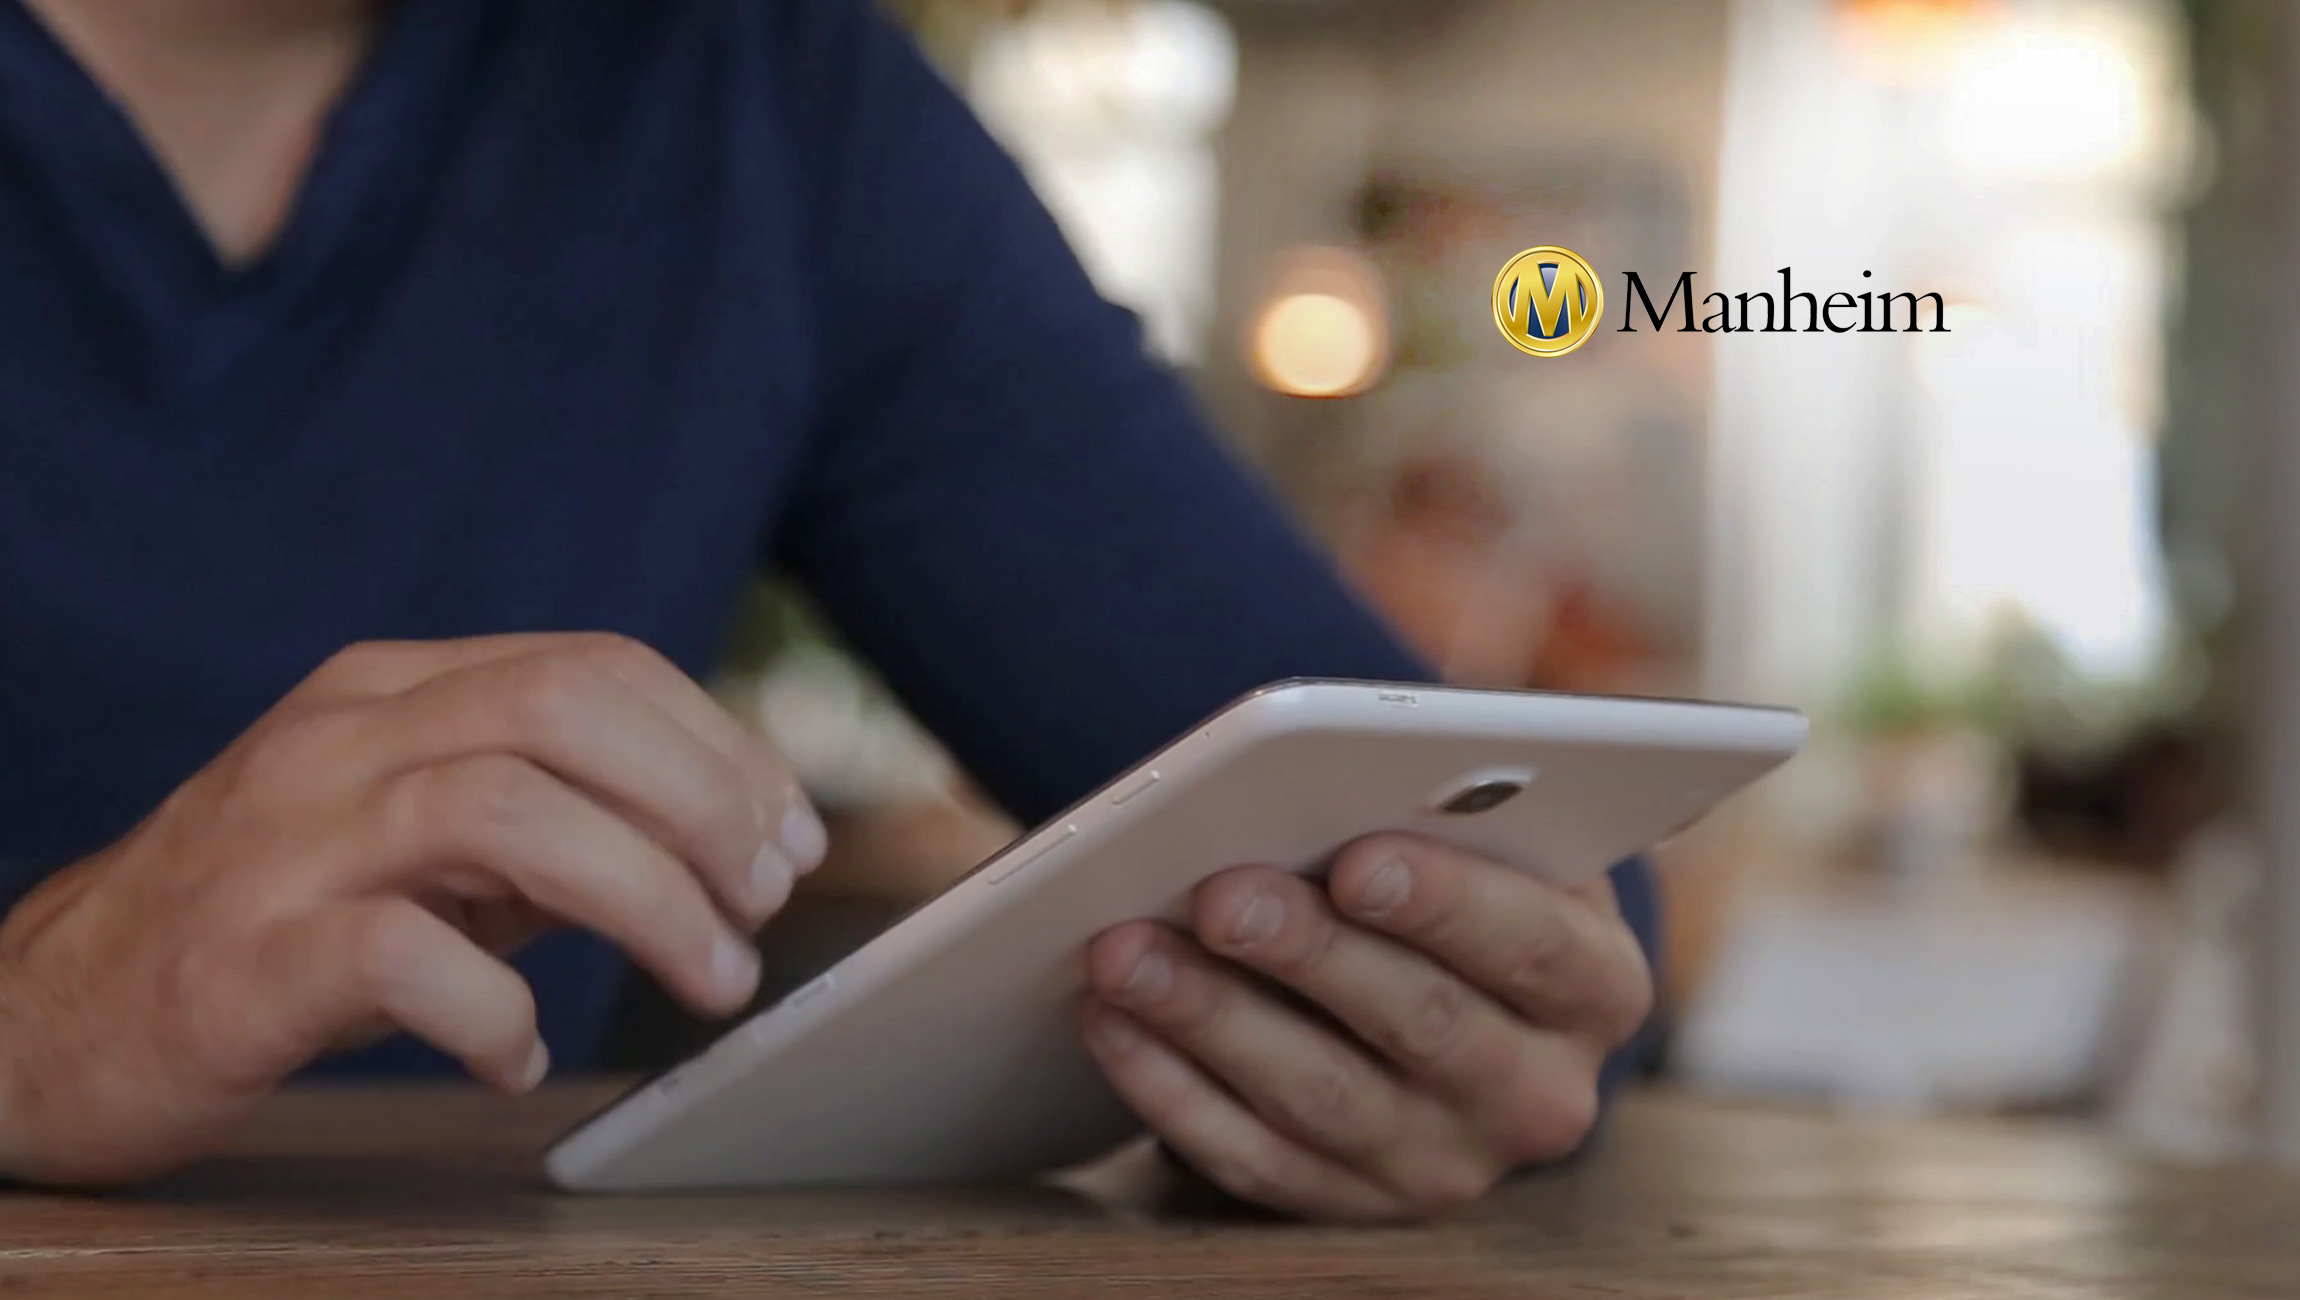 M LOGIC: Manheim's Product Suite Empowers Clients to Make Smarter, Real-time Decisions